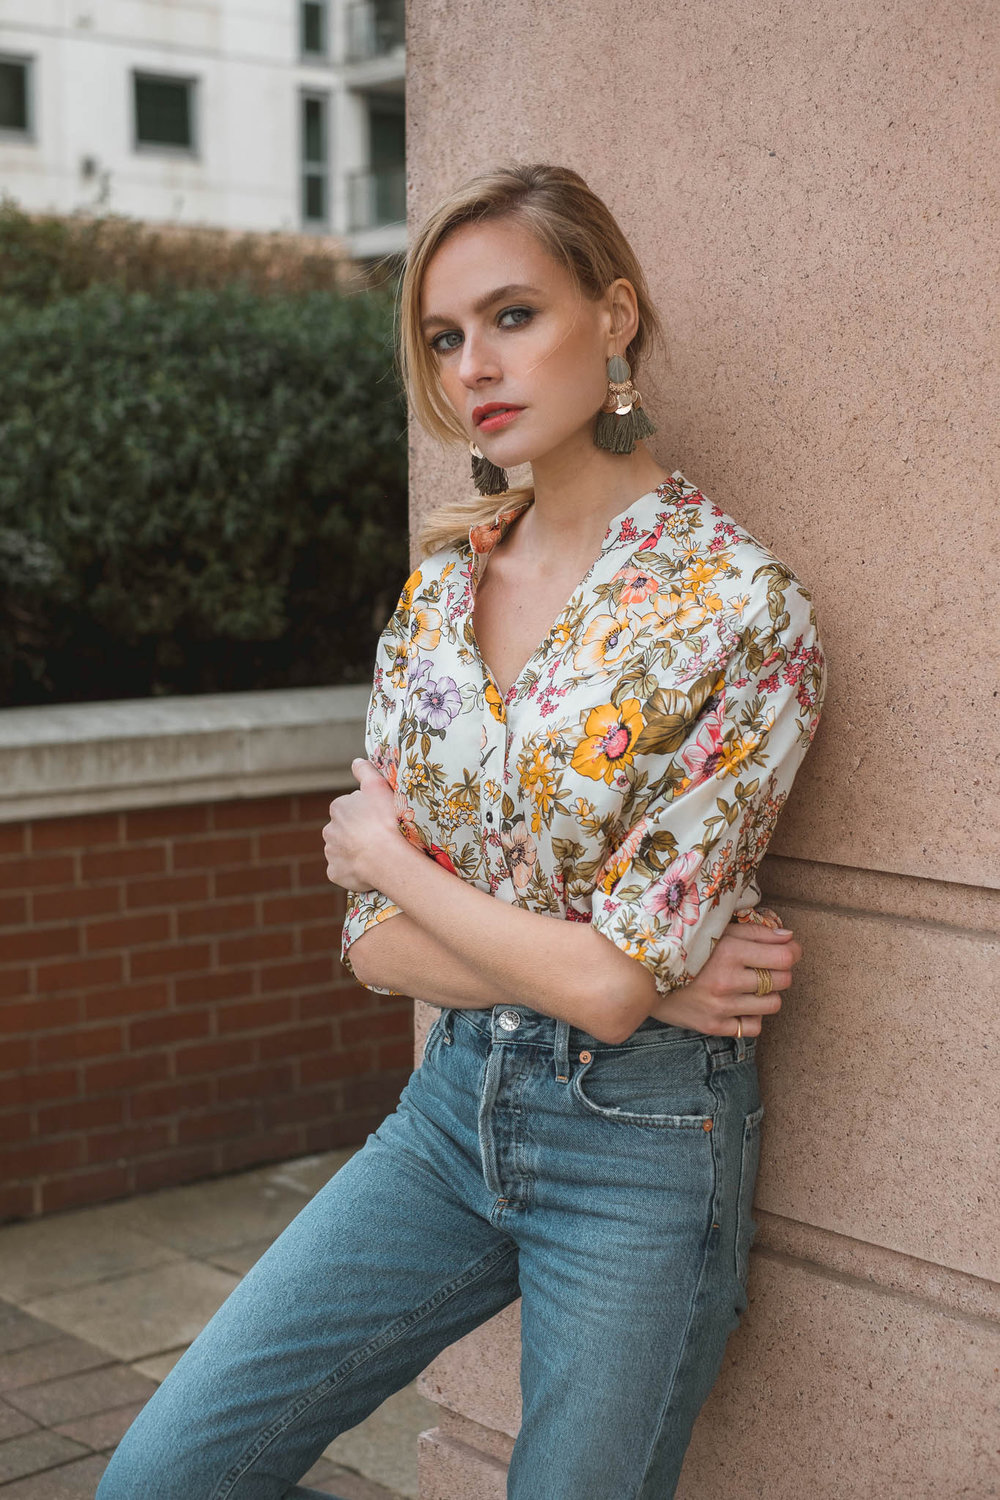 Annabell is wearing a   Zara blouse  , High waist jeans by   Agolde   and tassel earrings by   H&M